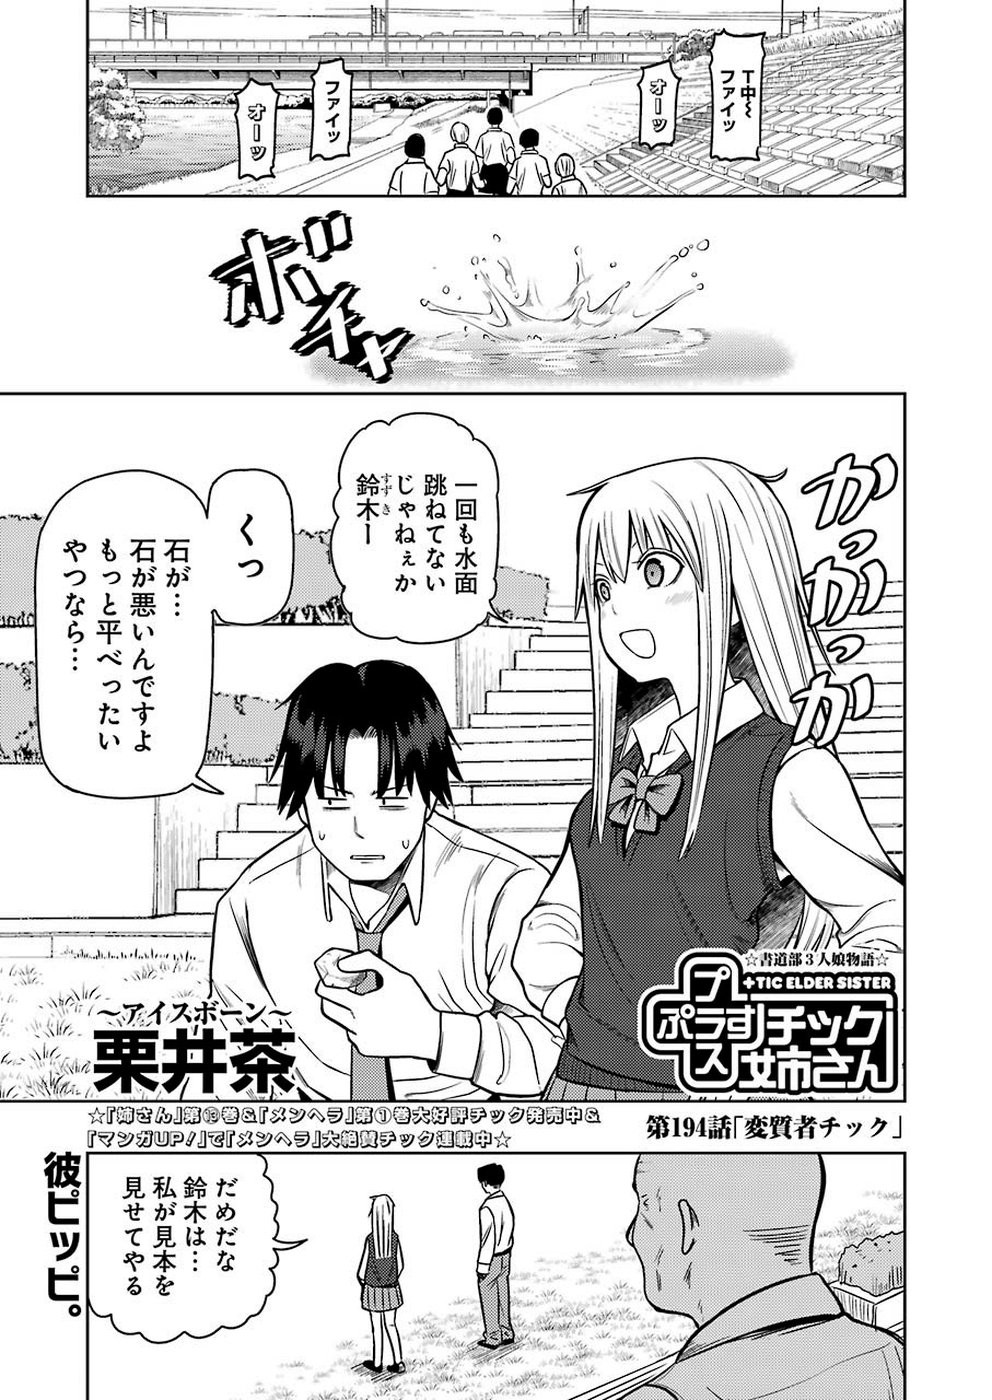 + Tic Nee-san - Chapter 194 - Page 1